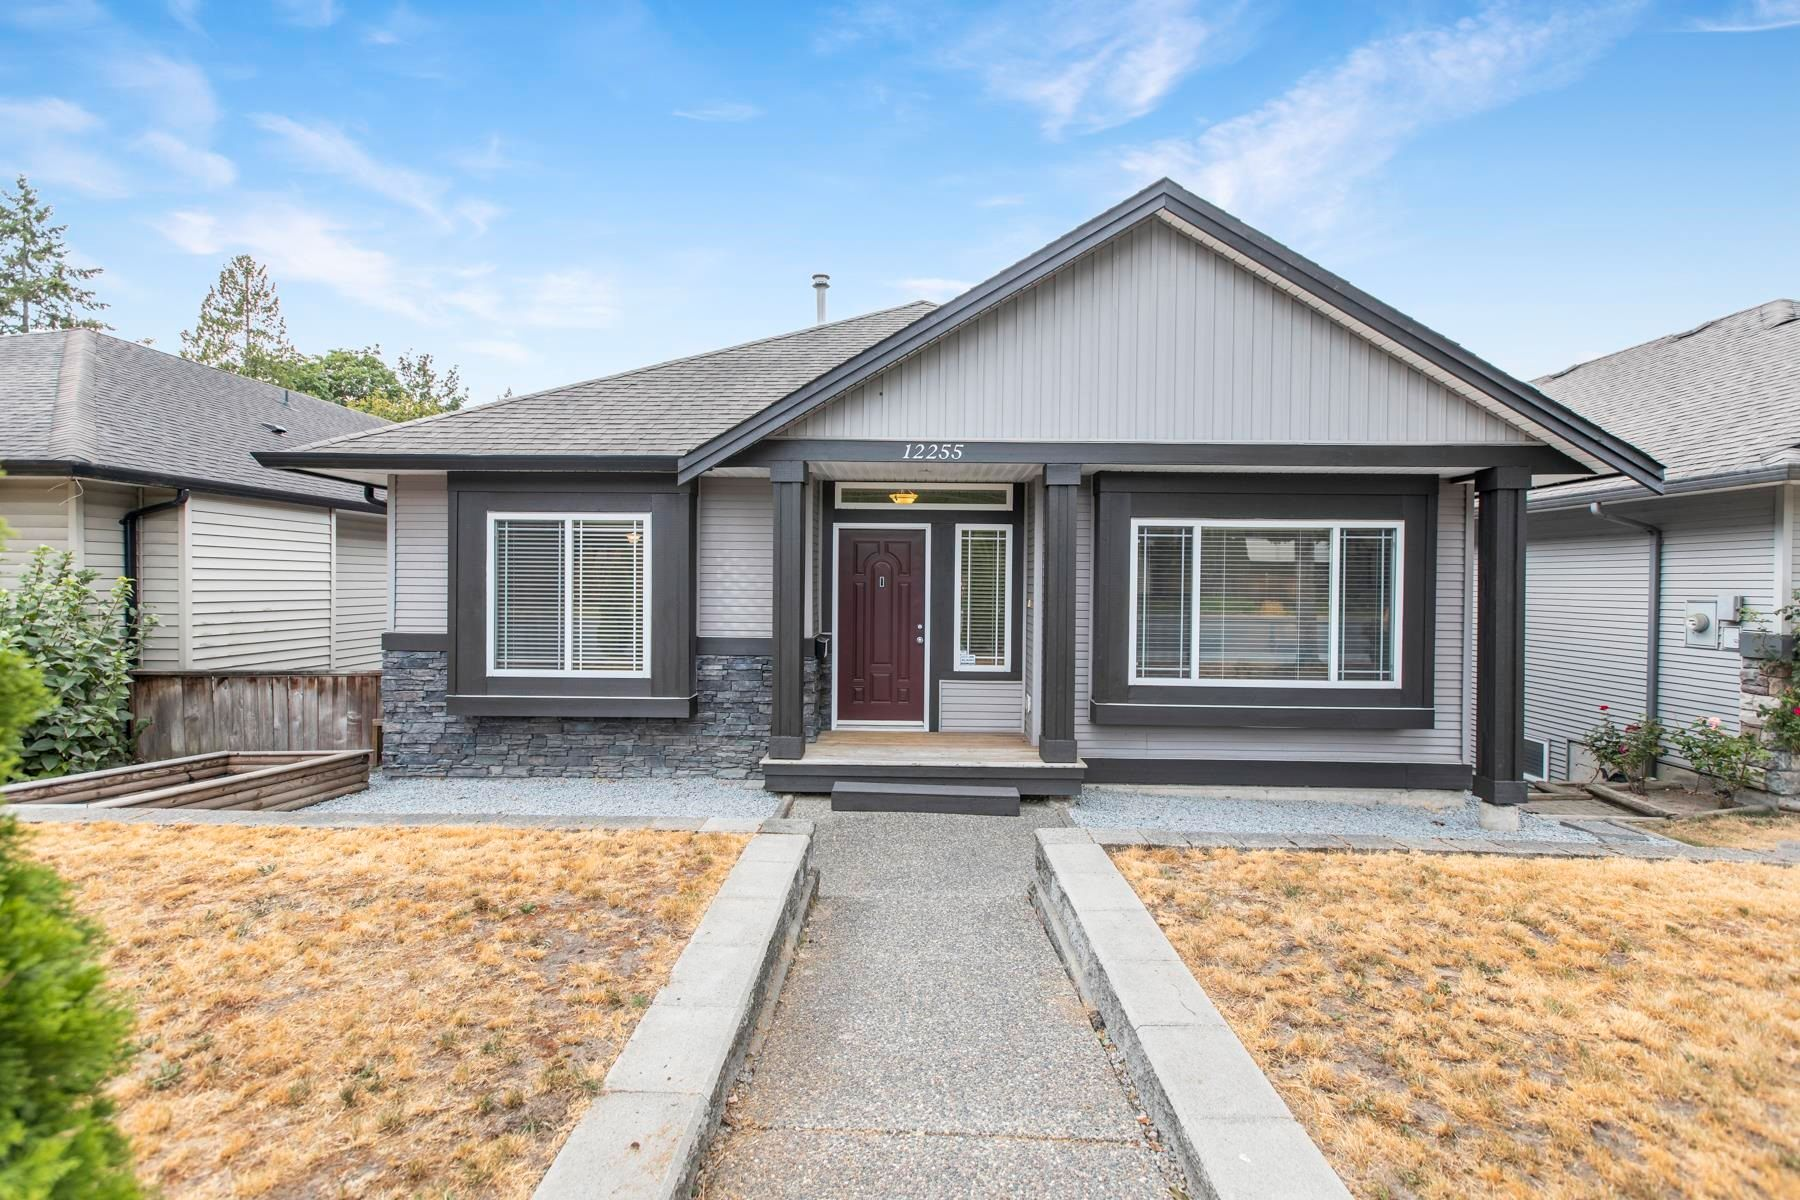 Main Photo: 12255 232 Street in Maple Ridge: East Central House for sale : MLS®# R2609033